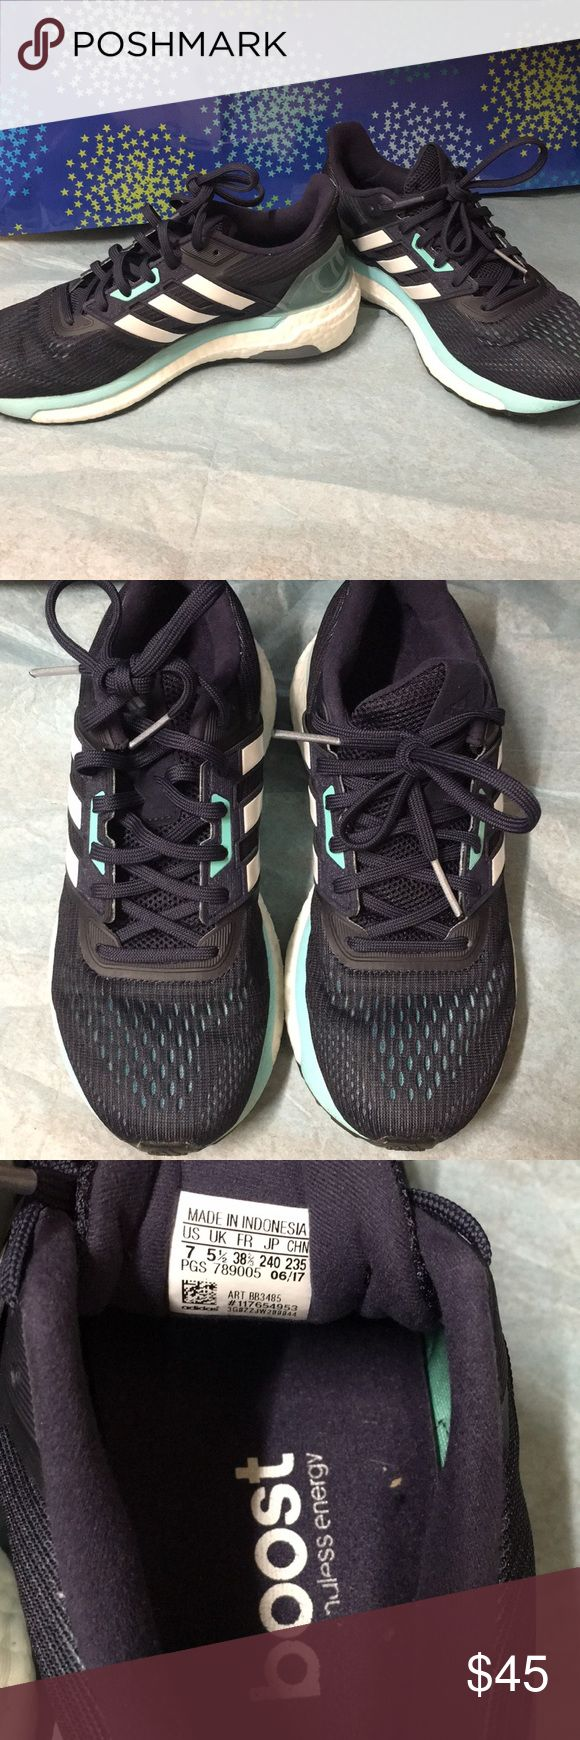 Adidas Boost endless energy sneakers Adidas Boost endless energy sneakers size 7 adidas Shoes Athletic Shoes